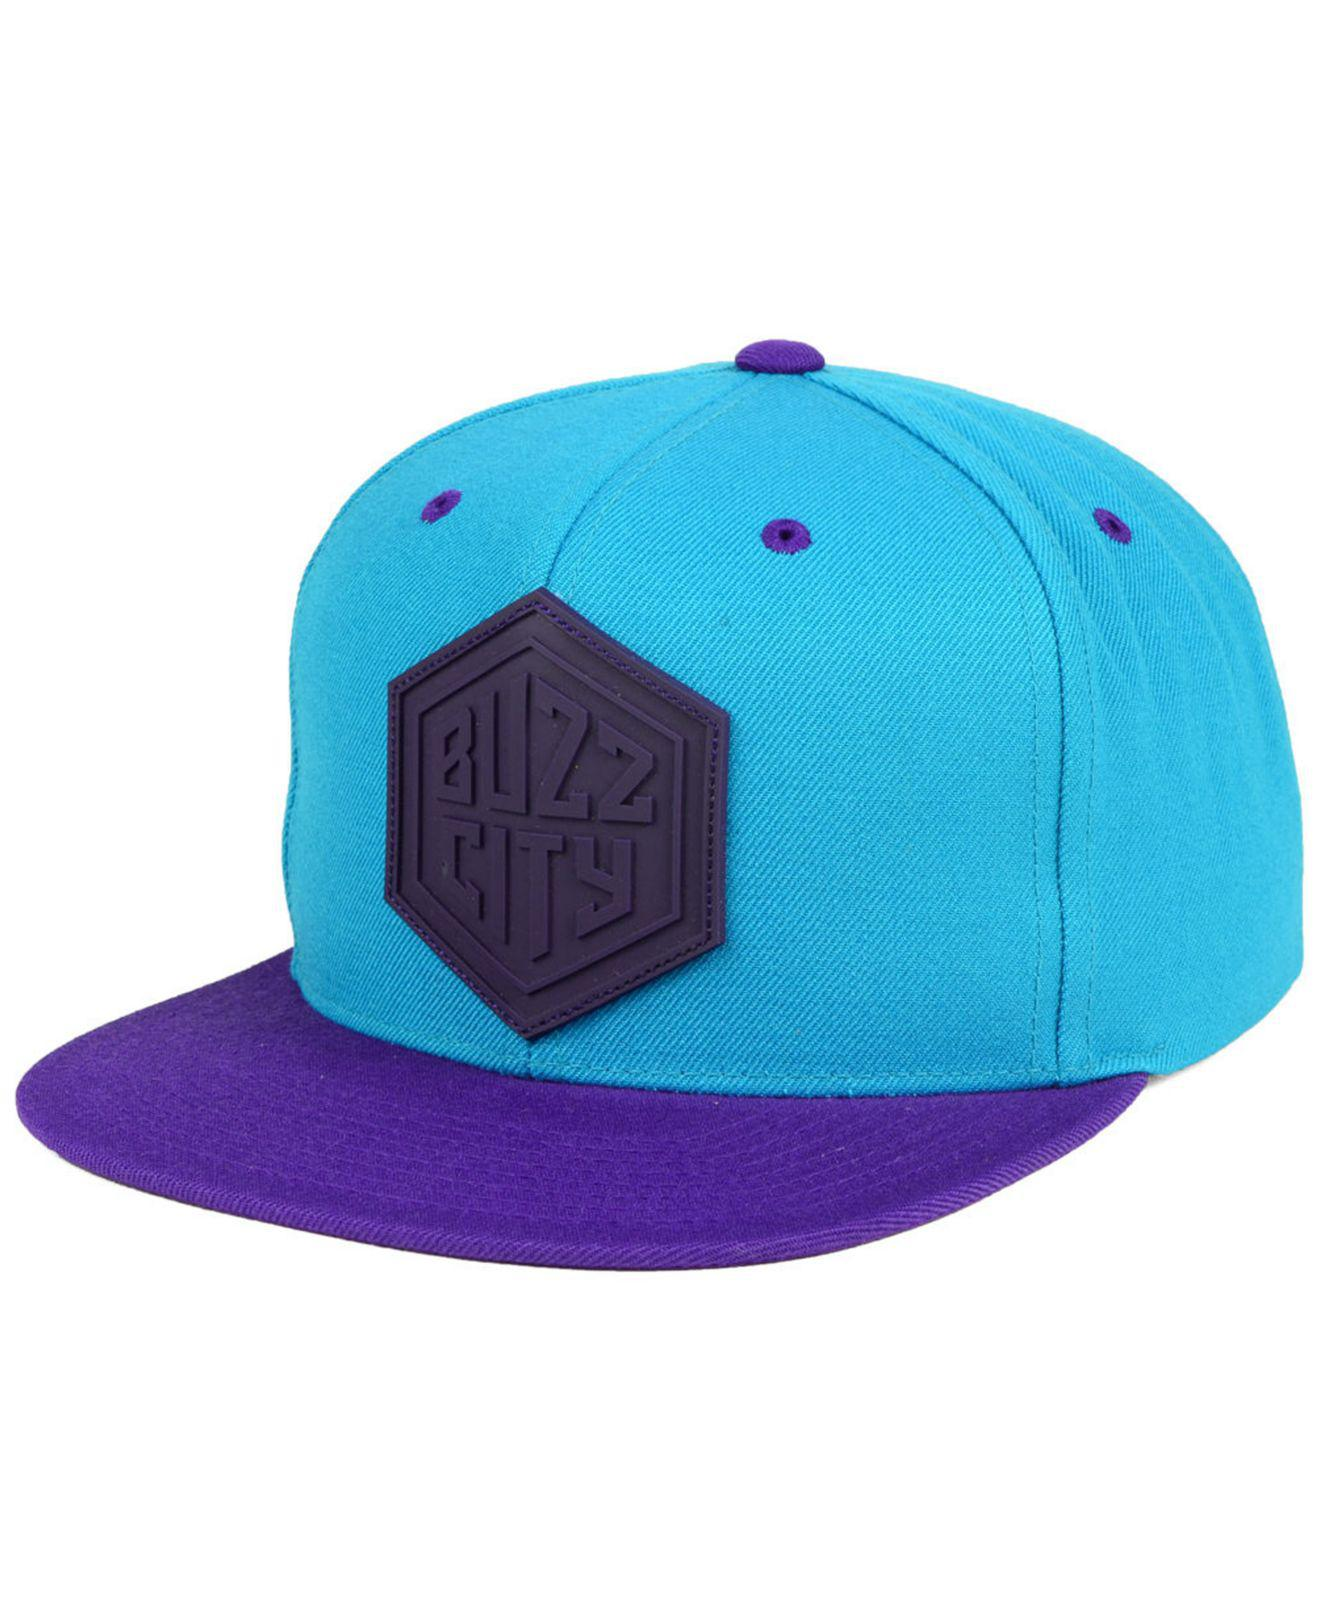 buy online f7863 bdf8a ... wool solid snapback adjustable hat a5258 b46a7  denmark mitchell ness.  mens blue charlotte hornets rubber weld snapback cap 9a2bb b3595